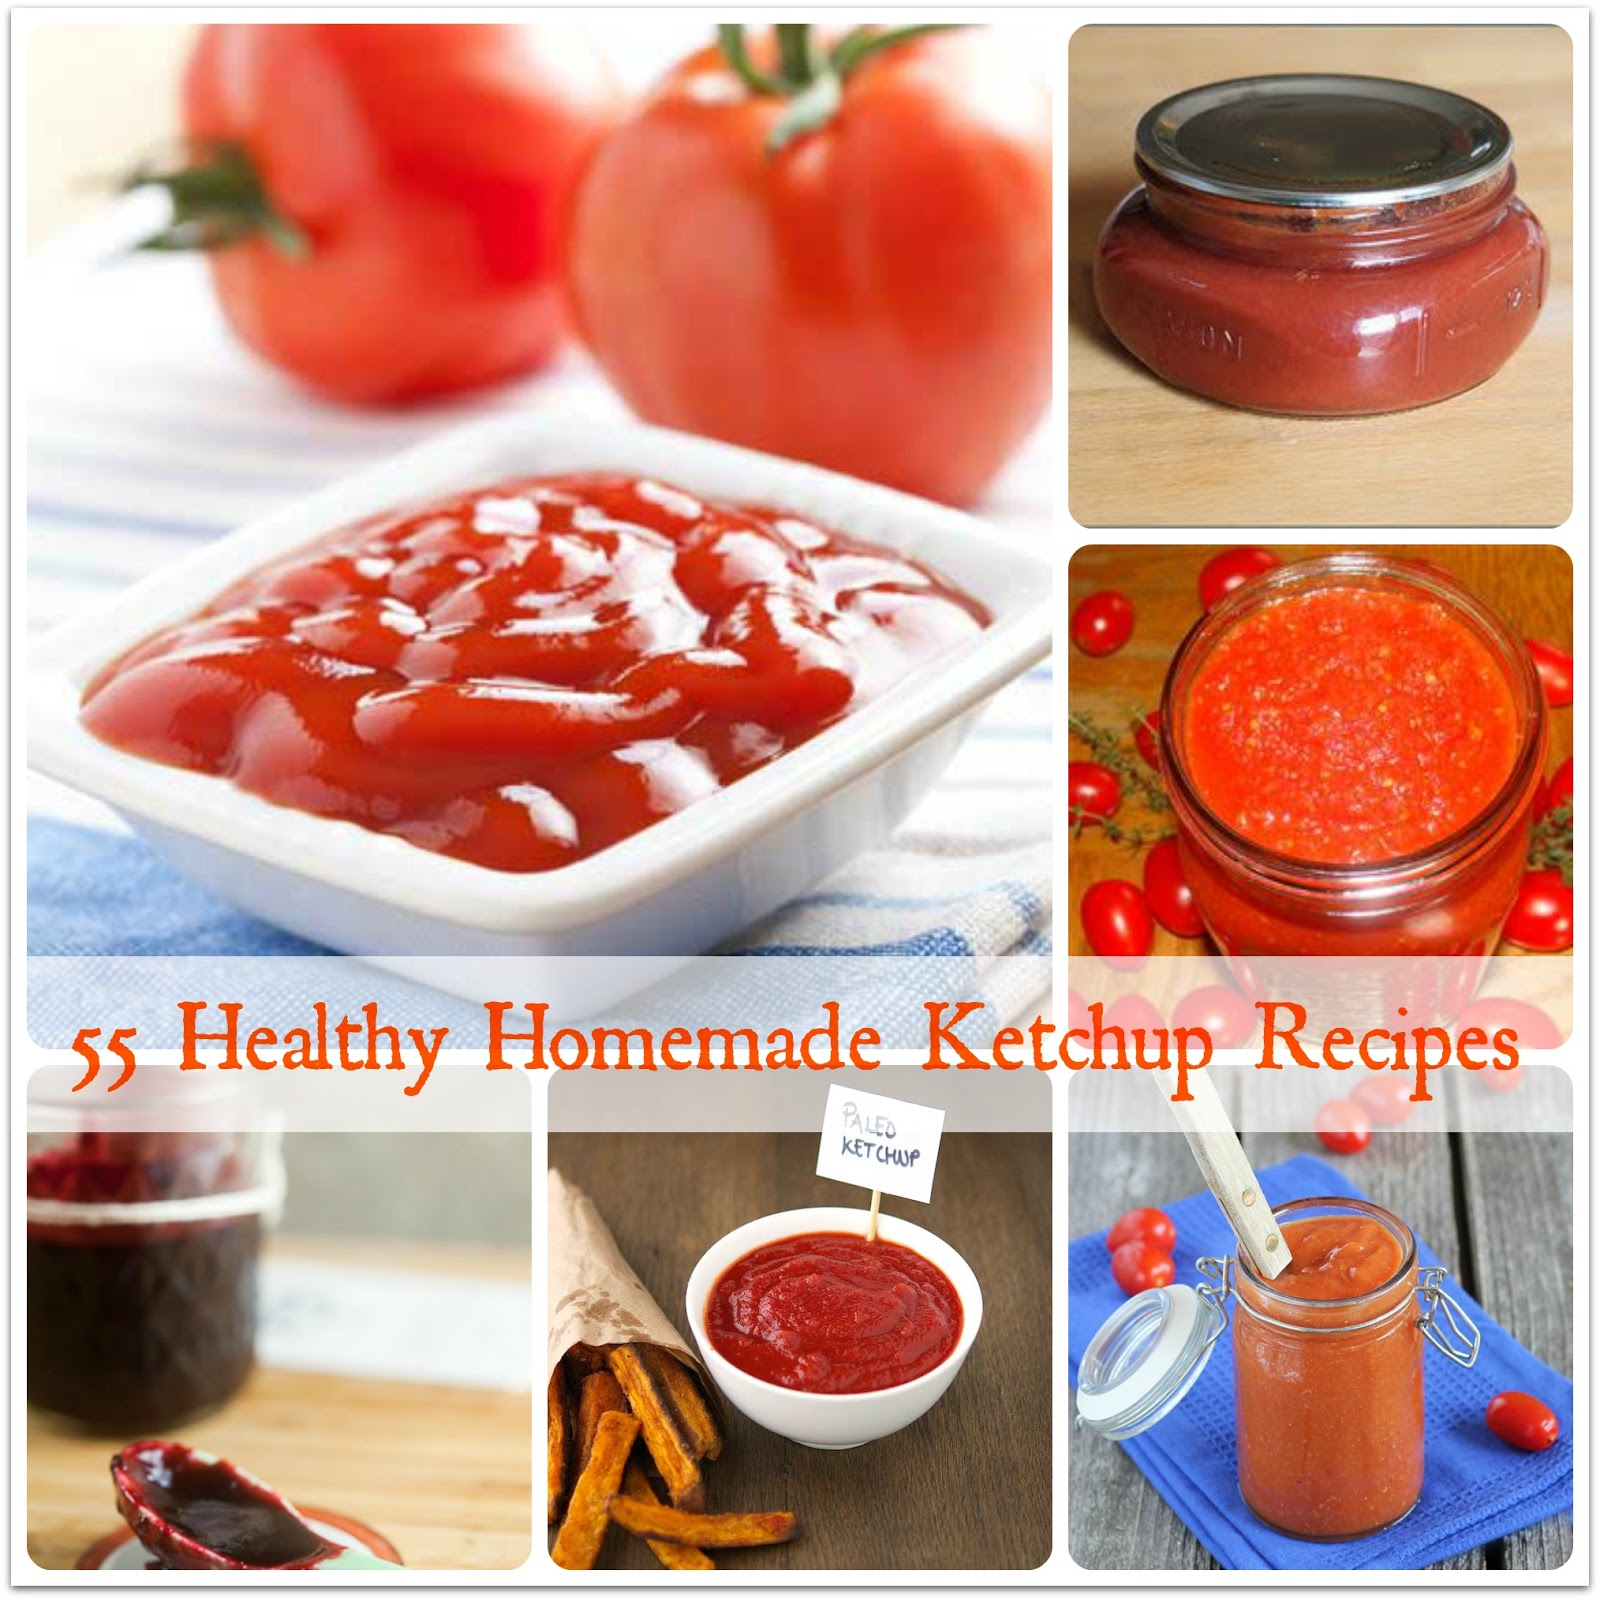 55 Healthy Homemade Ketchup Recipes